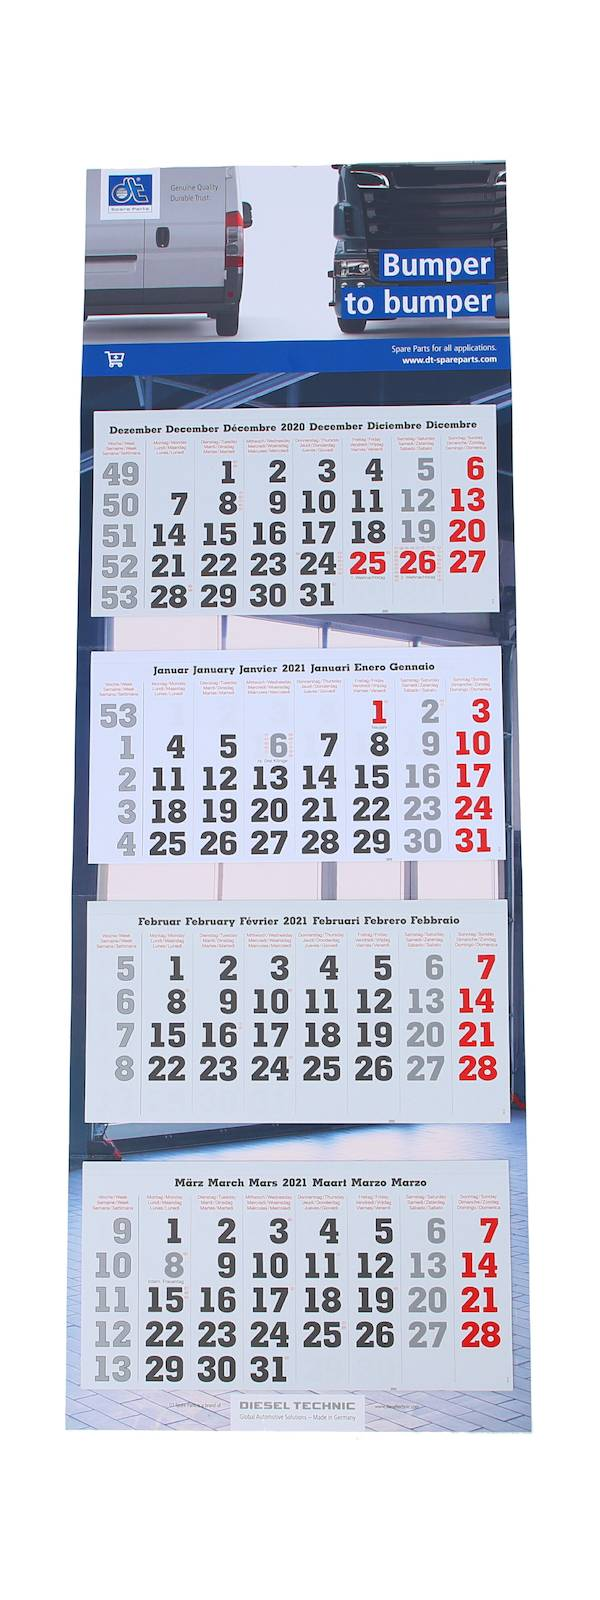 4-month wall calender, cyrillic, with holidays 2020